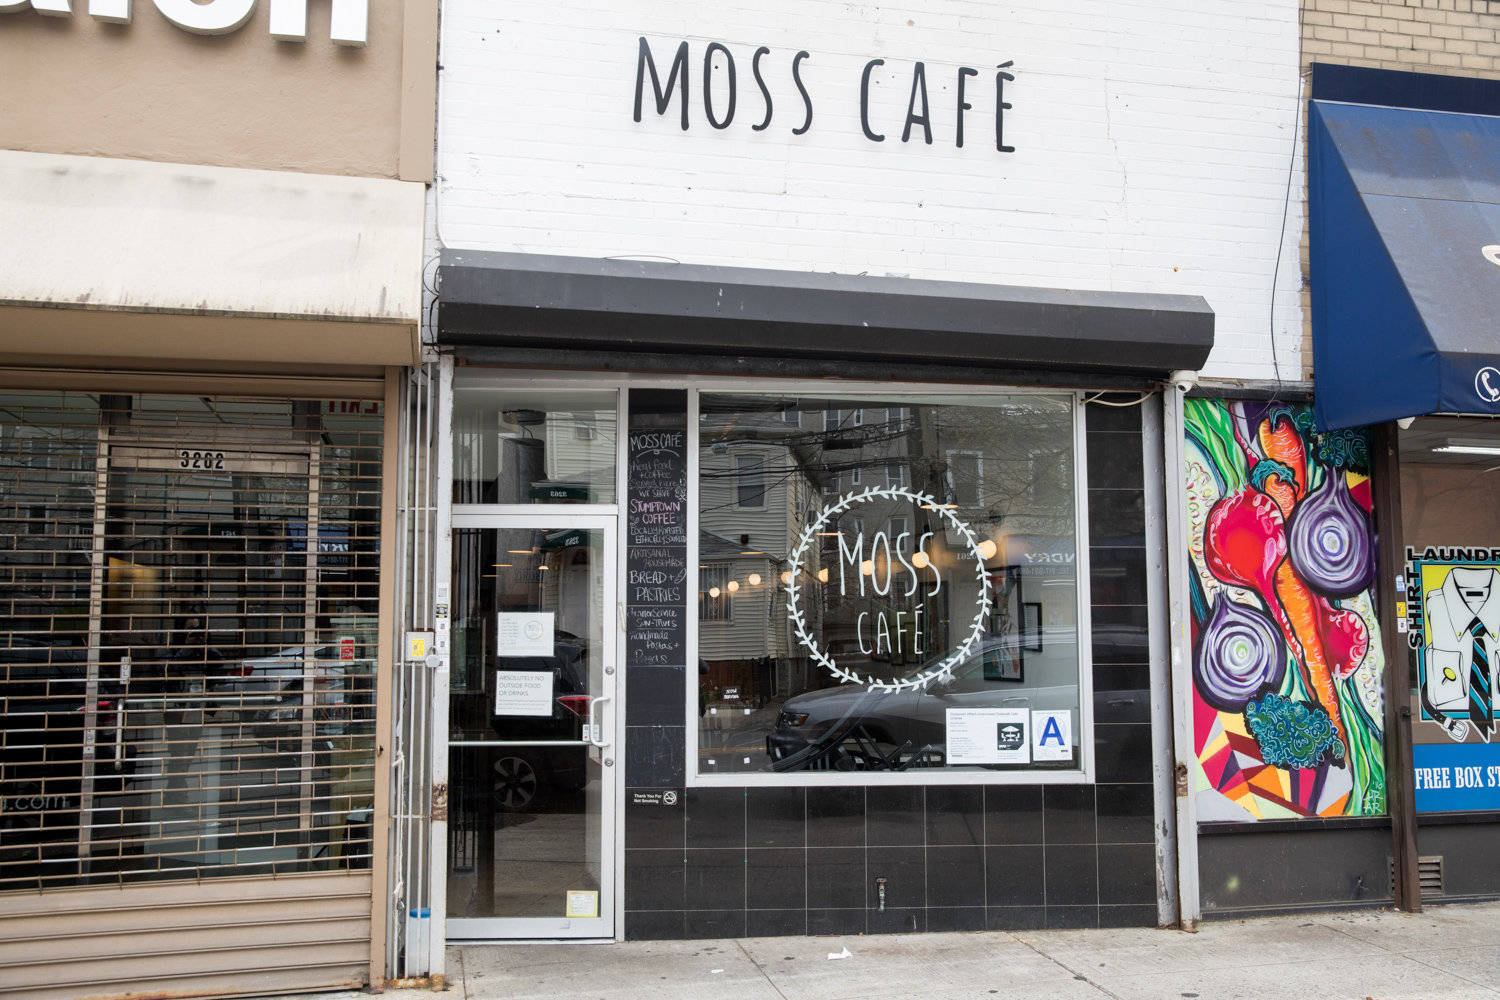 Moss Cafe temporarily closed its Johnson Avenue doors March 19 in a bid to get ahead of any statewide shutdown surrounding the coronavirus pandemic. It is unclear when it might reopen.